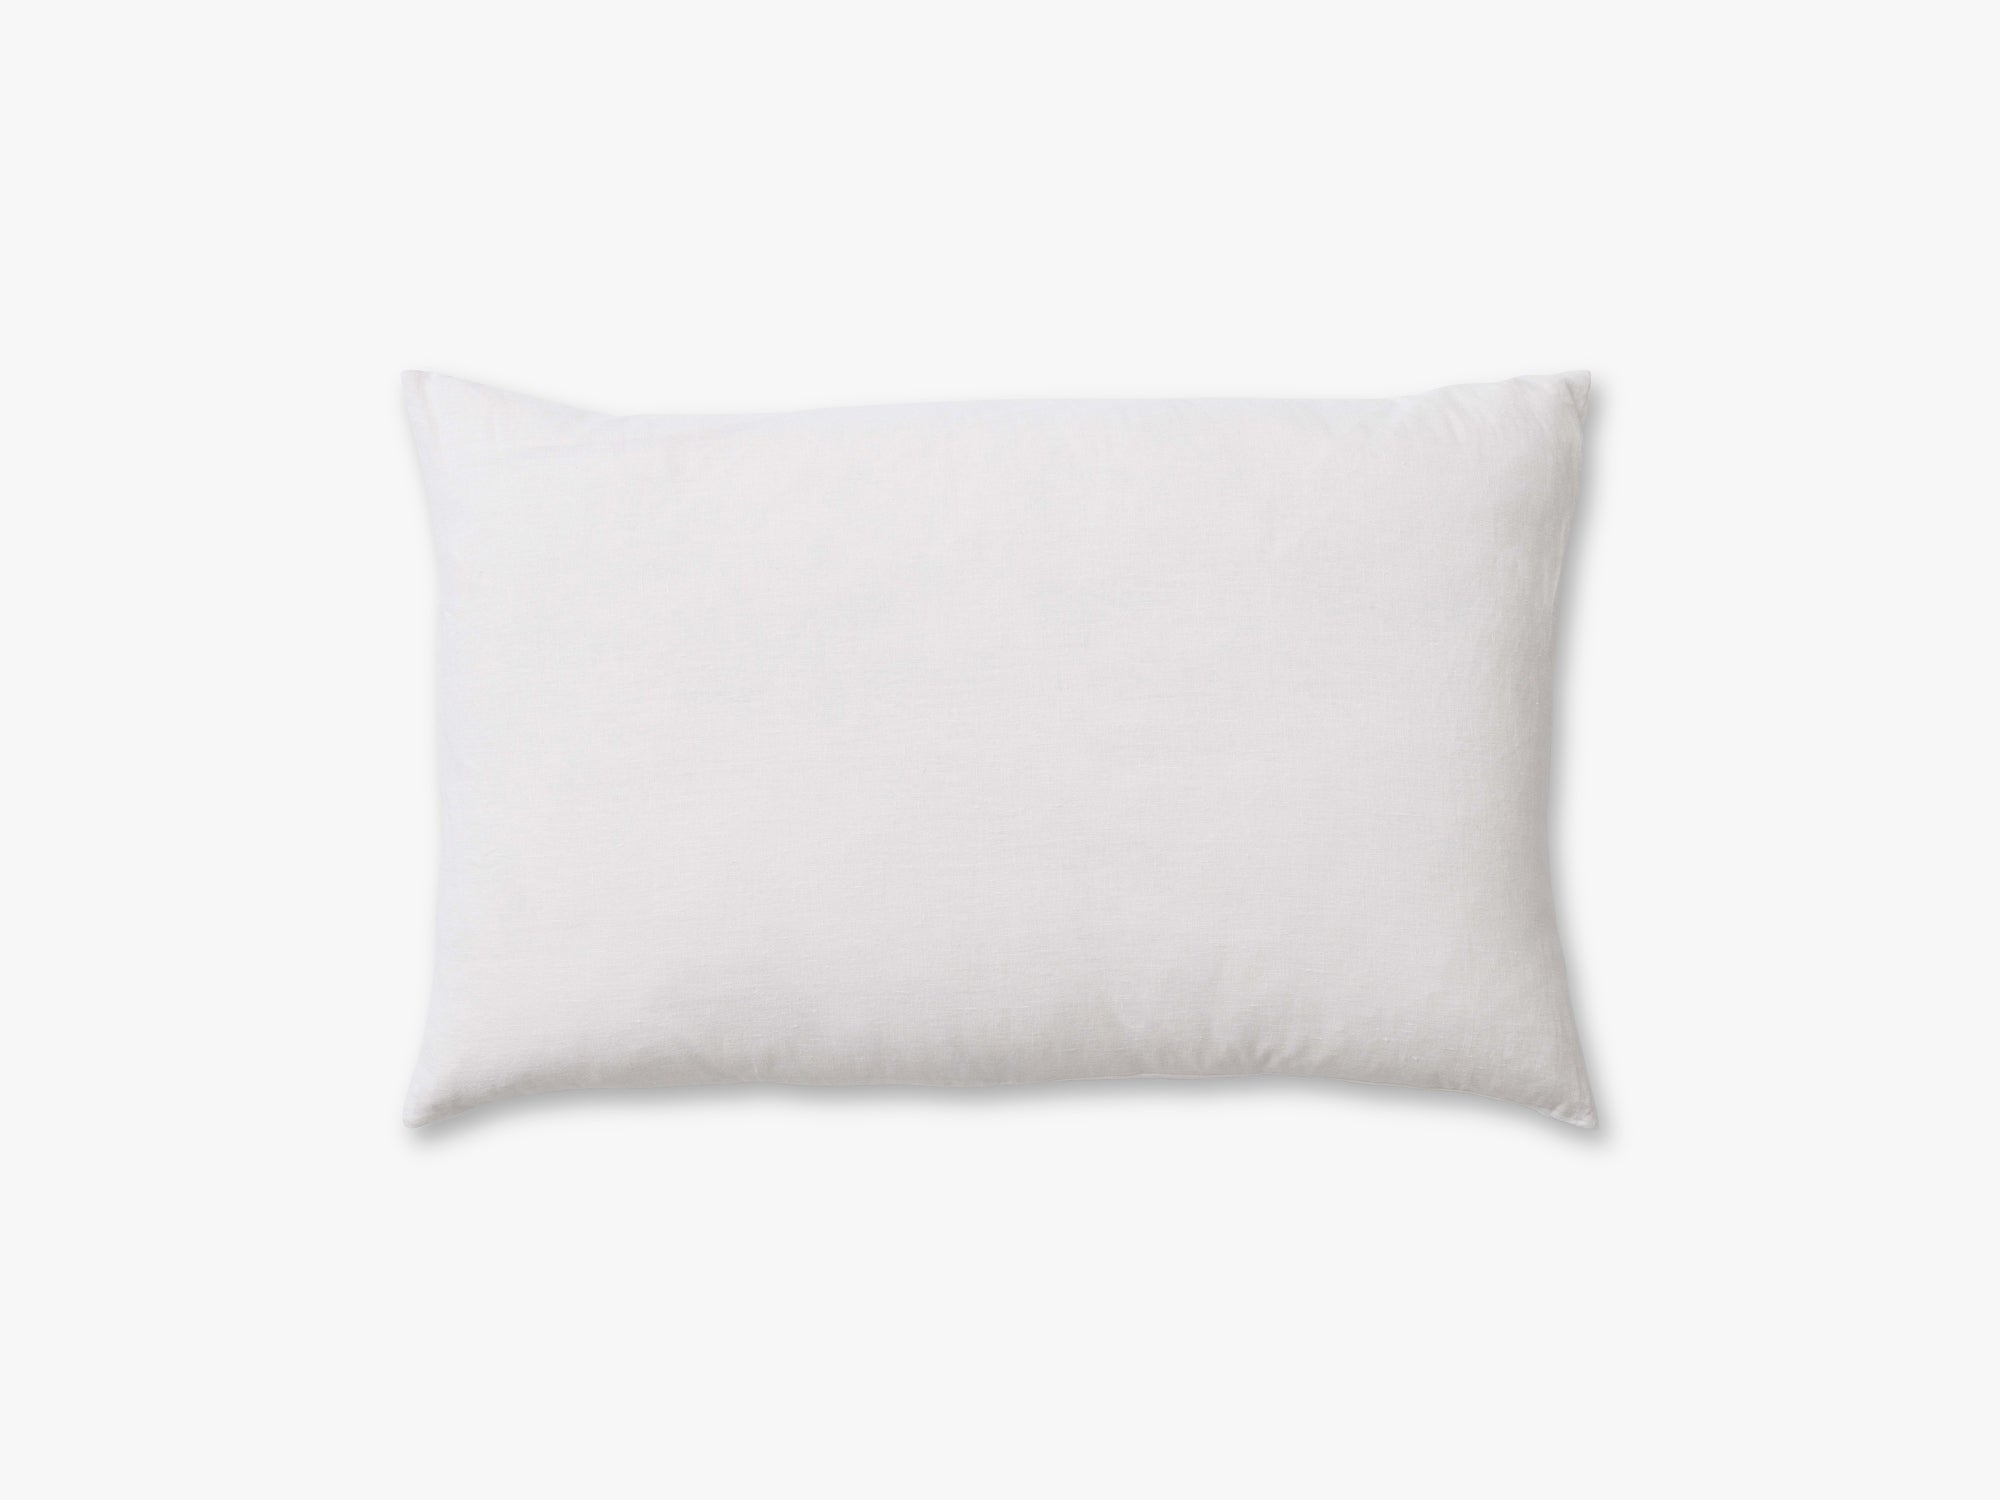 Collect Cushion SC30 - 50x80, Milk/Linen fra &tradition